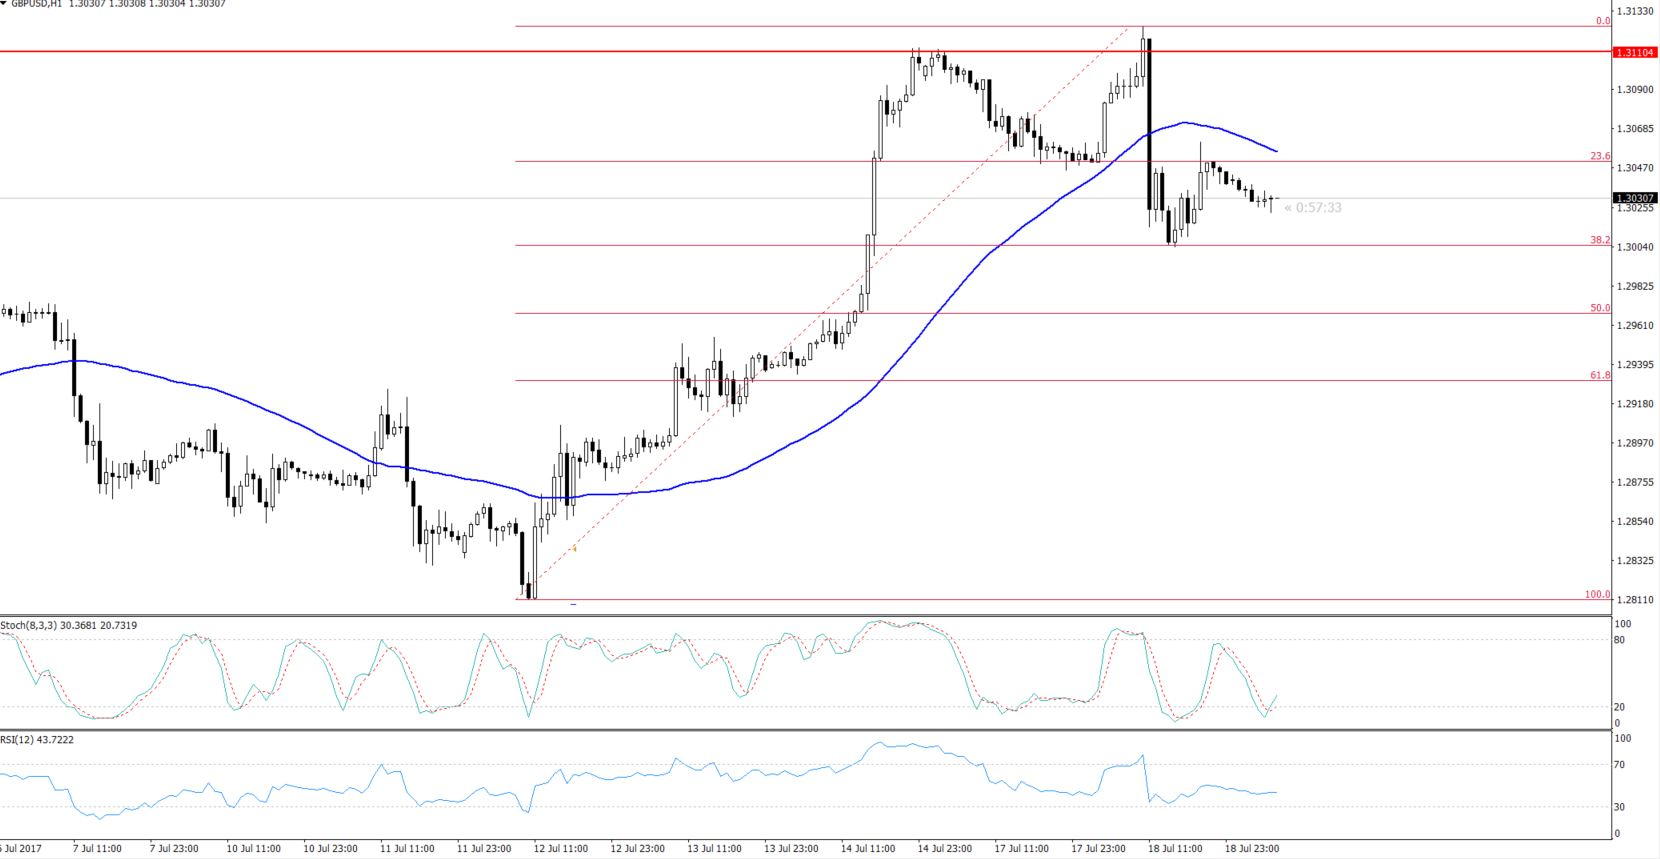 GBPUSD - Hourly Chart - 38.2% Retracement